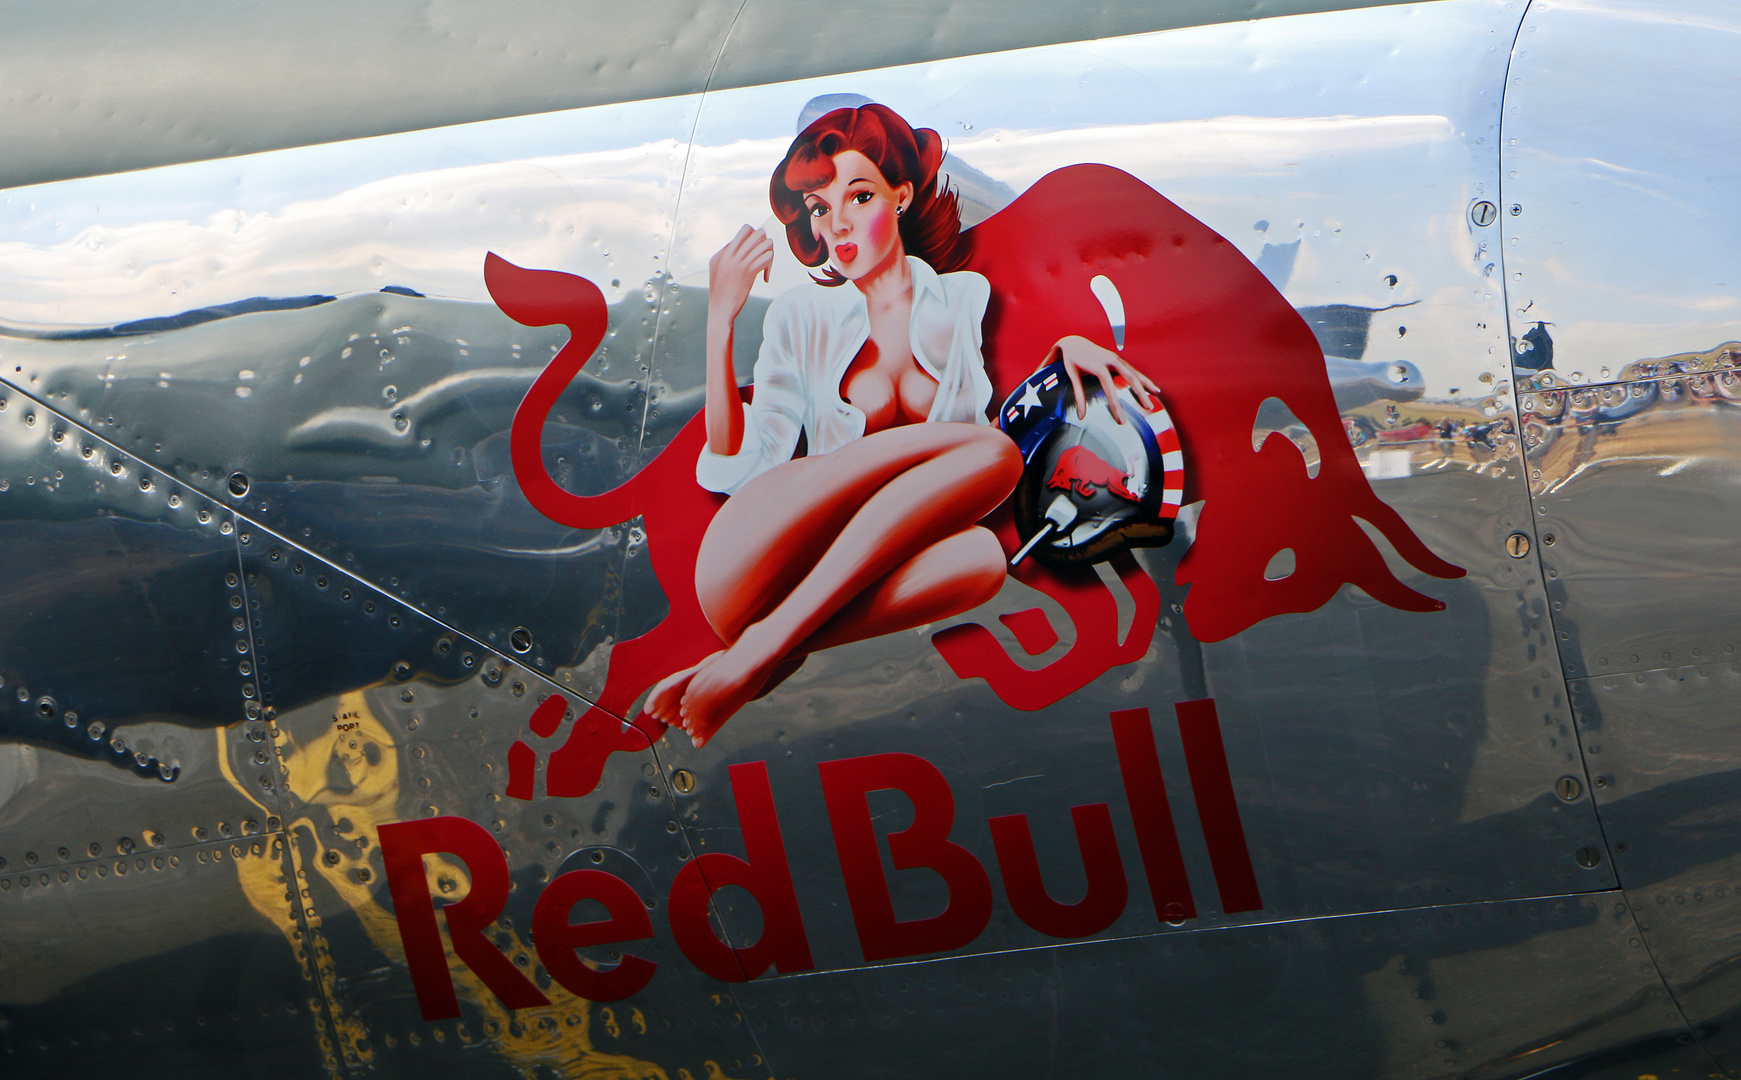 RED BULL PIN UP GIRL